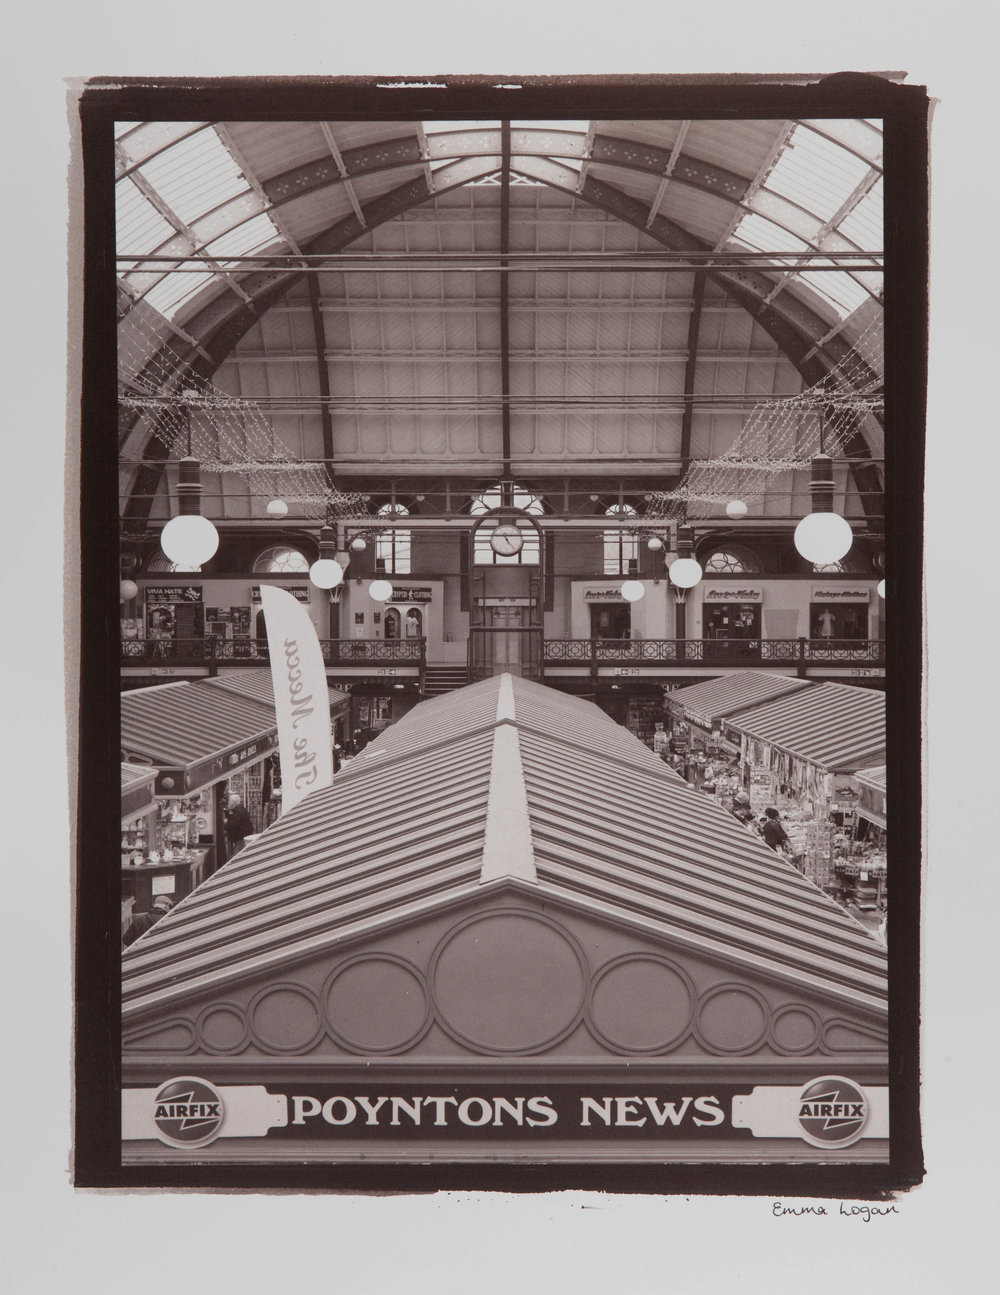 "The Derby Market Hall. Digital Negative Salt Prints. Original size - 16x20""."